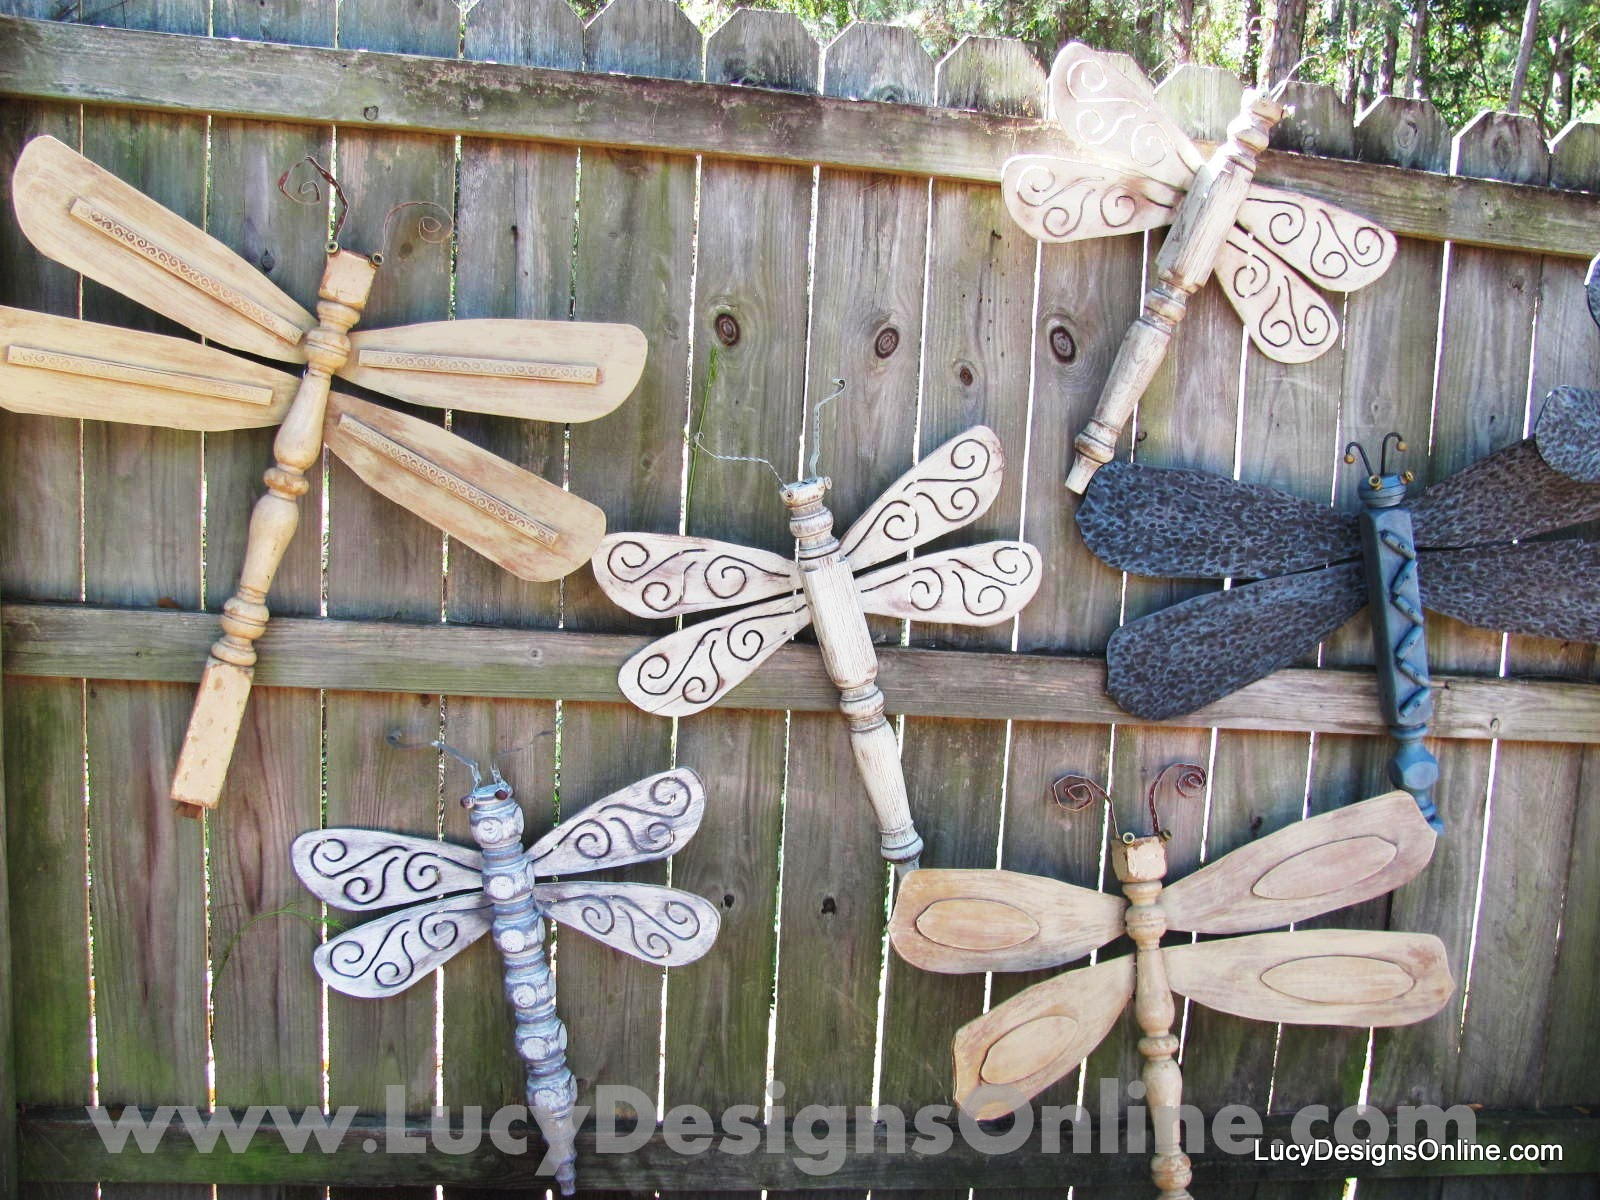 Table Leg Dragonfly Garden Art The Originals